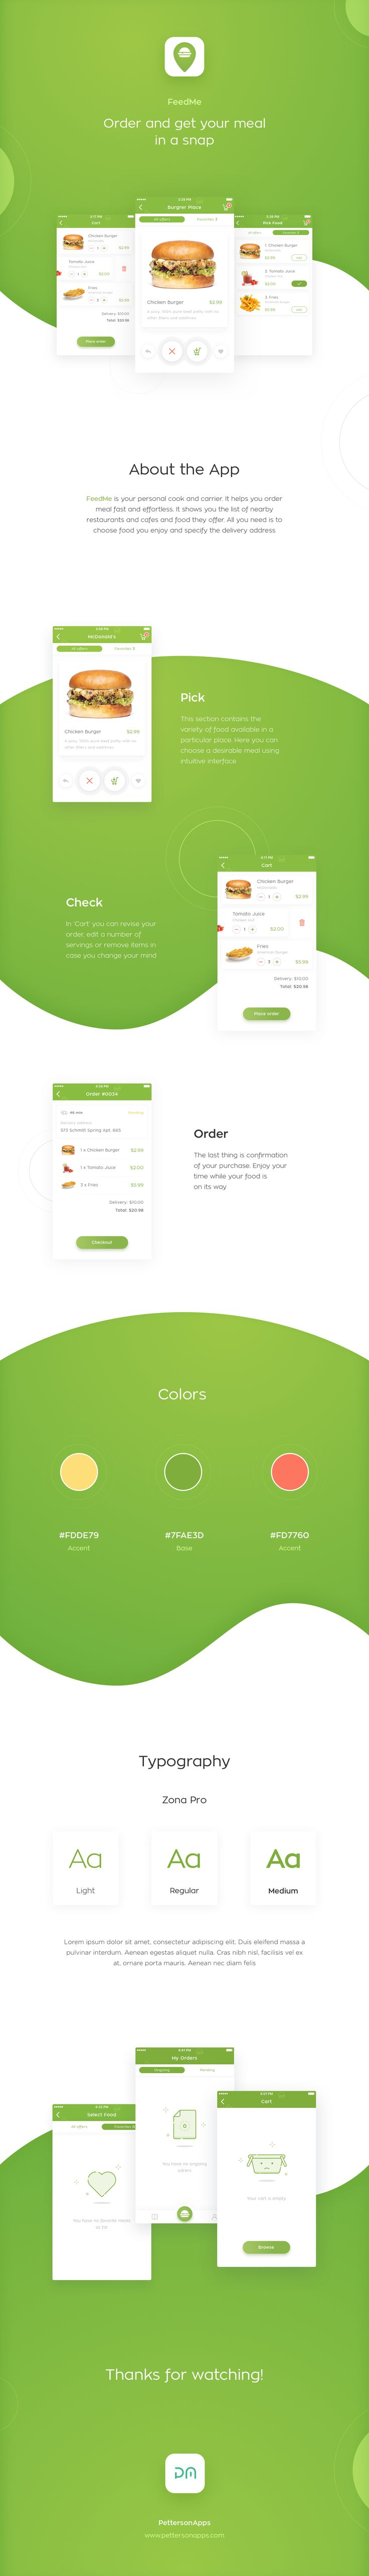 FeedMe is your personal cook and carrier. It helps you order meal fast and effortless. It shows you the list of nearby restaurants and cafes and food they offer. All you need is to choose food you enjoy and specify the delivery address